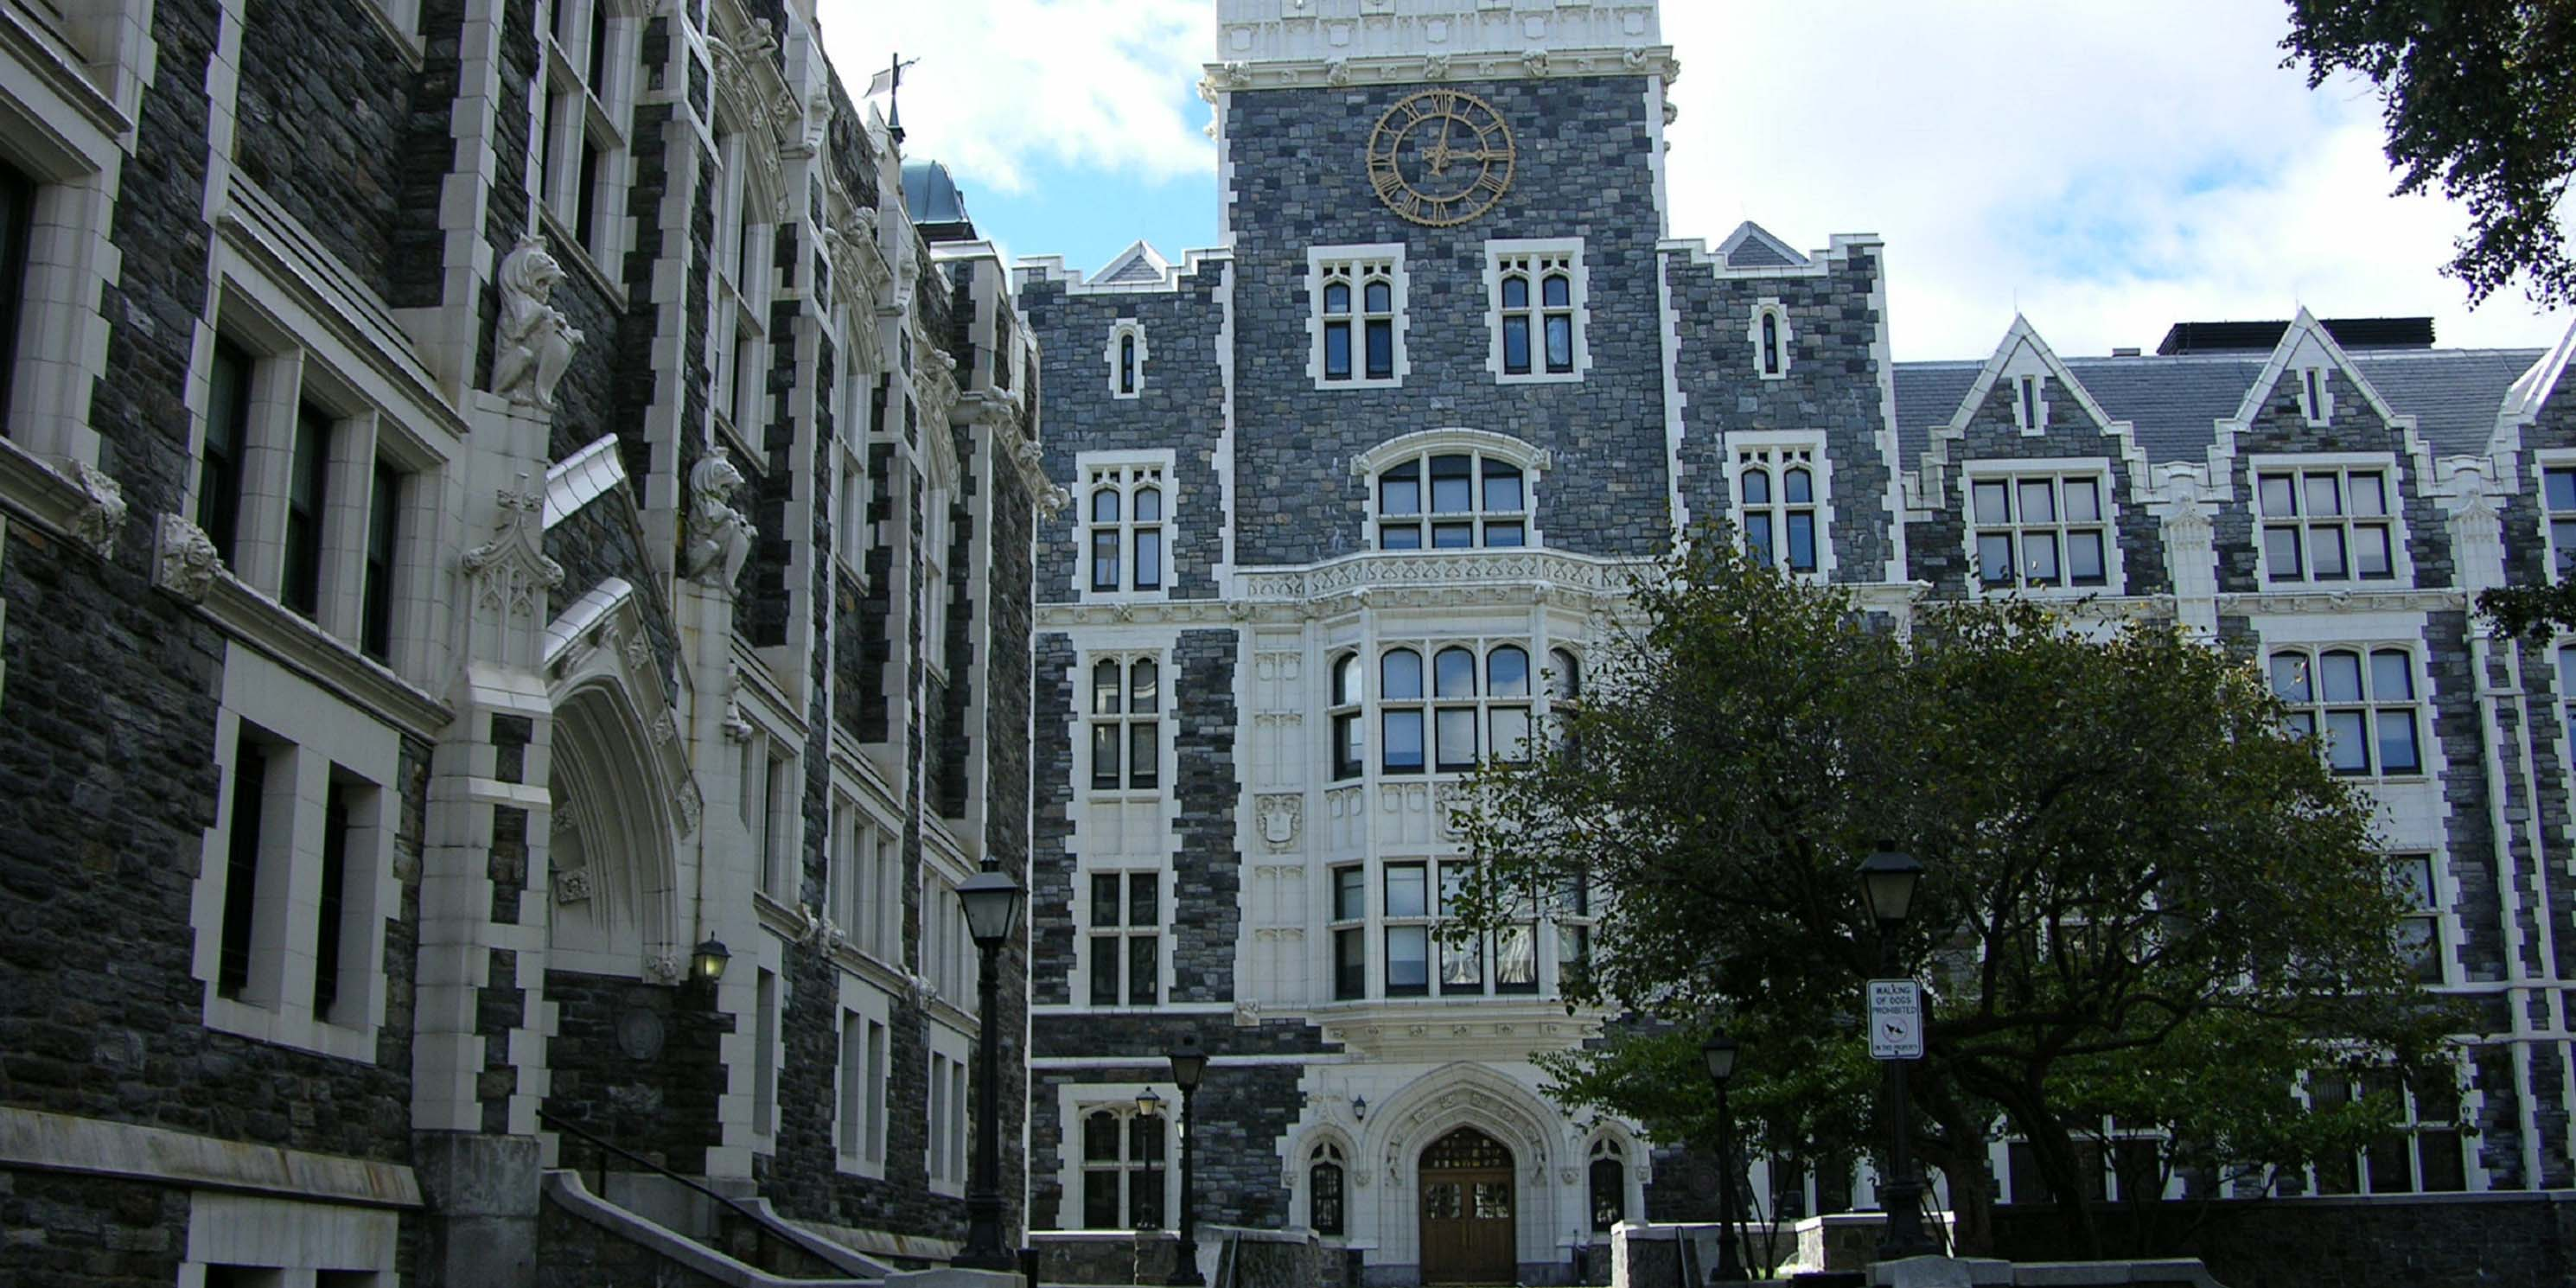 Exterior of City College buildings